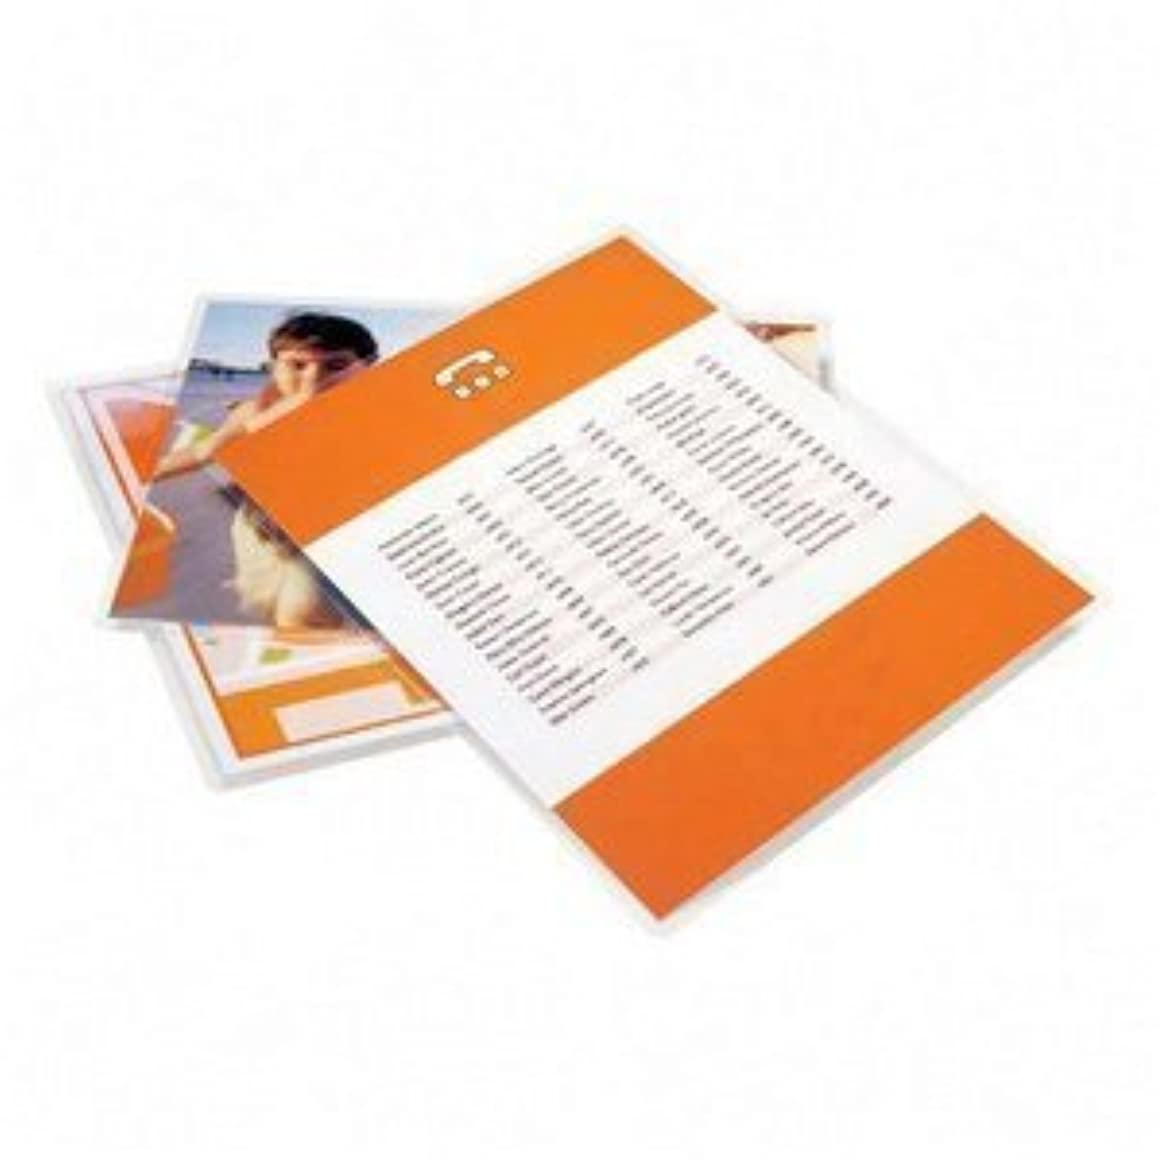 (Ship From USA) Letter Size Laminating Pouches - 3mil / Mil Thickness: 3 Mil,Size: 8.75' x 11.25',Clear glossy finish with standard 1/8' radius rounded corners,100/box includes silicone coated lamina